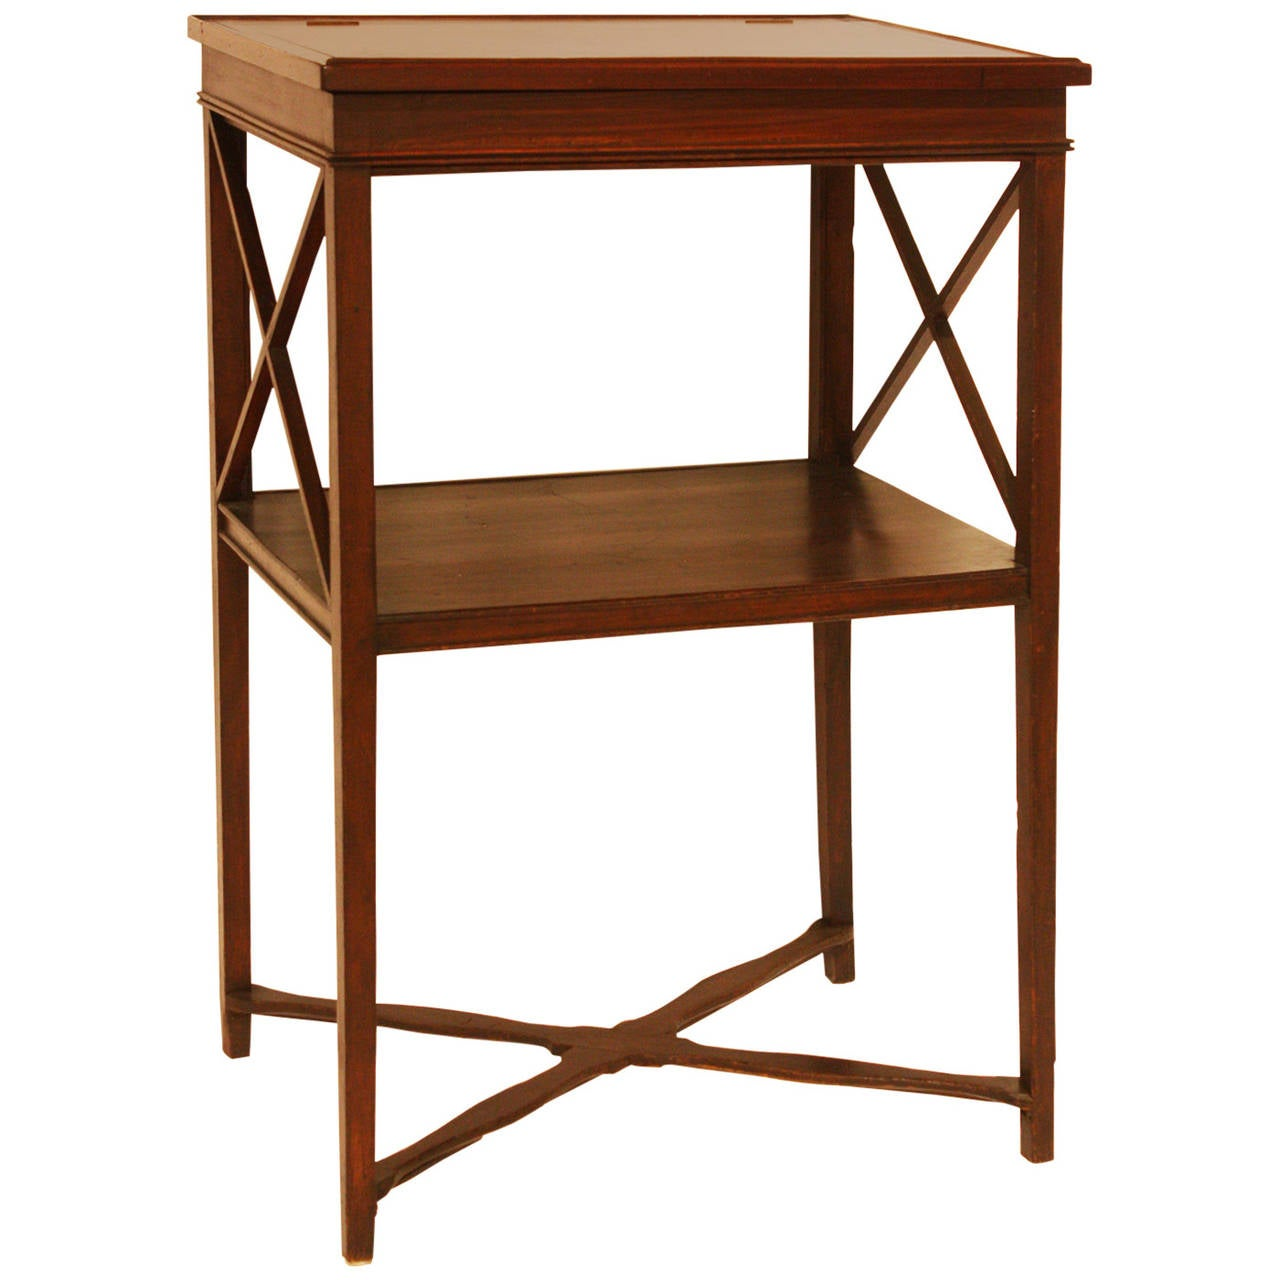 Antique American Standing Desk For Sale - Antique American Standing Desk At 1stdibs